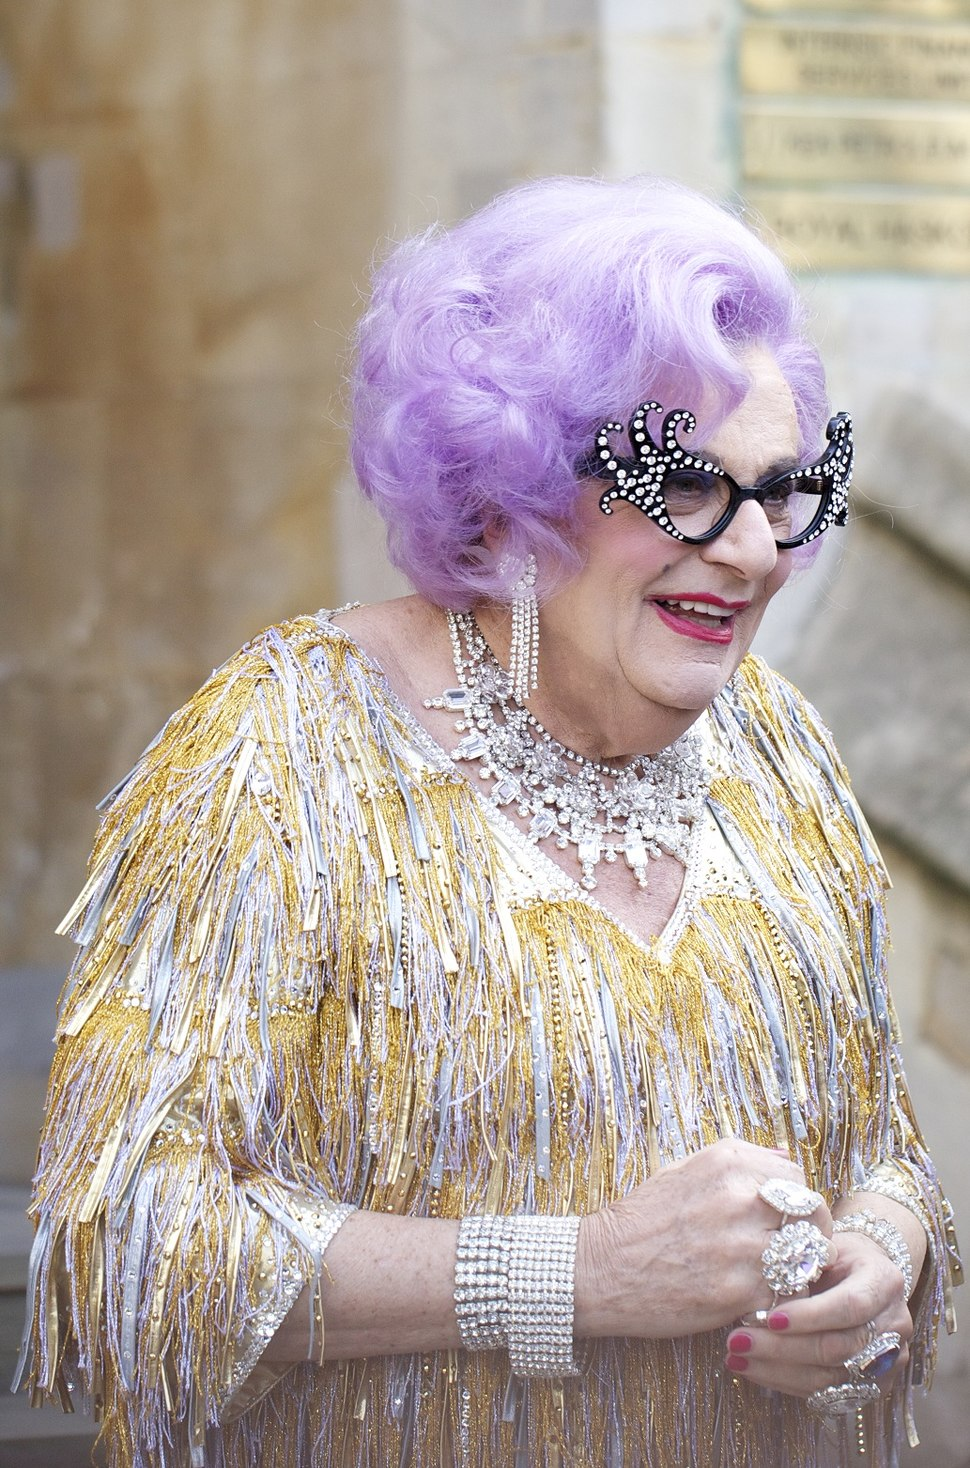 Dame Edna at the royal wedding cropped